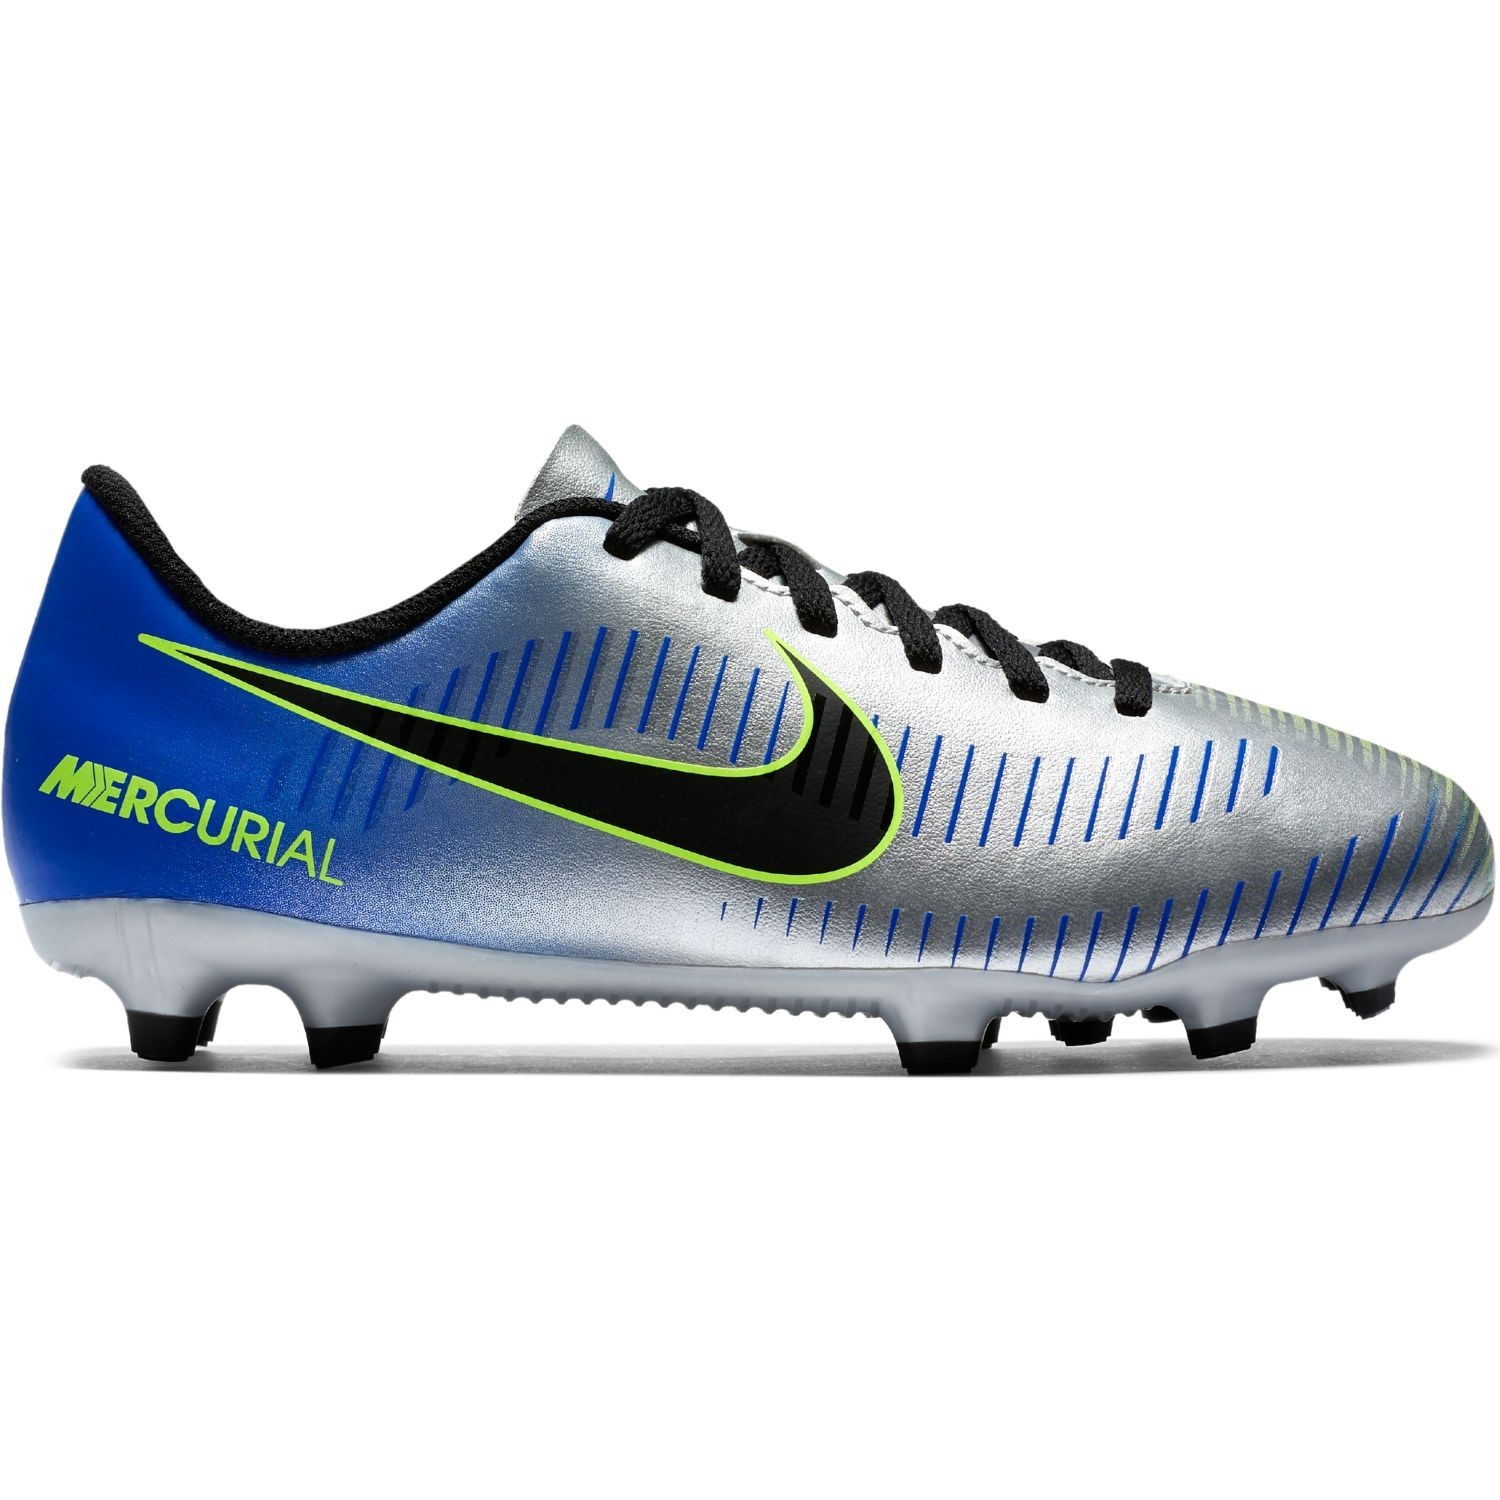 Nike Neymar Jr Mercurial Vortex III FG - Kids Football Boots - Racer  Blue Black 6069e4853ac56